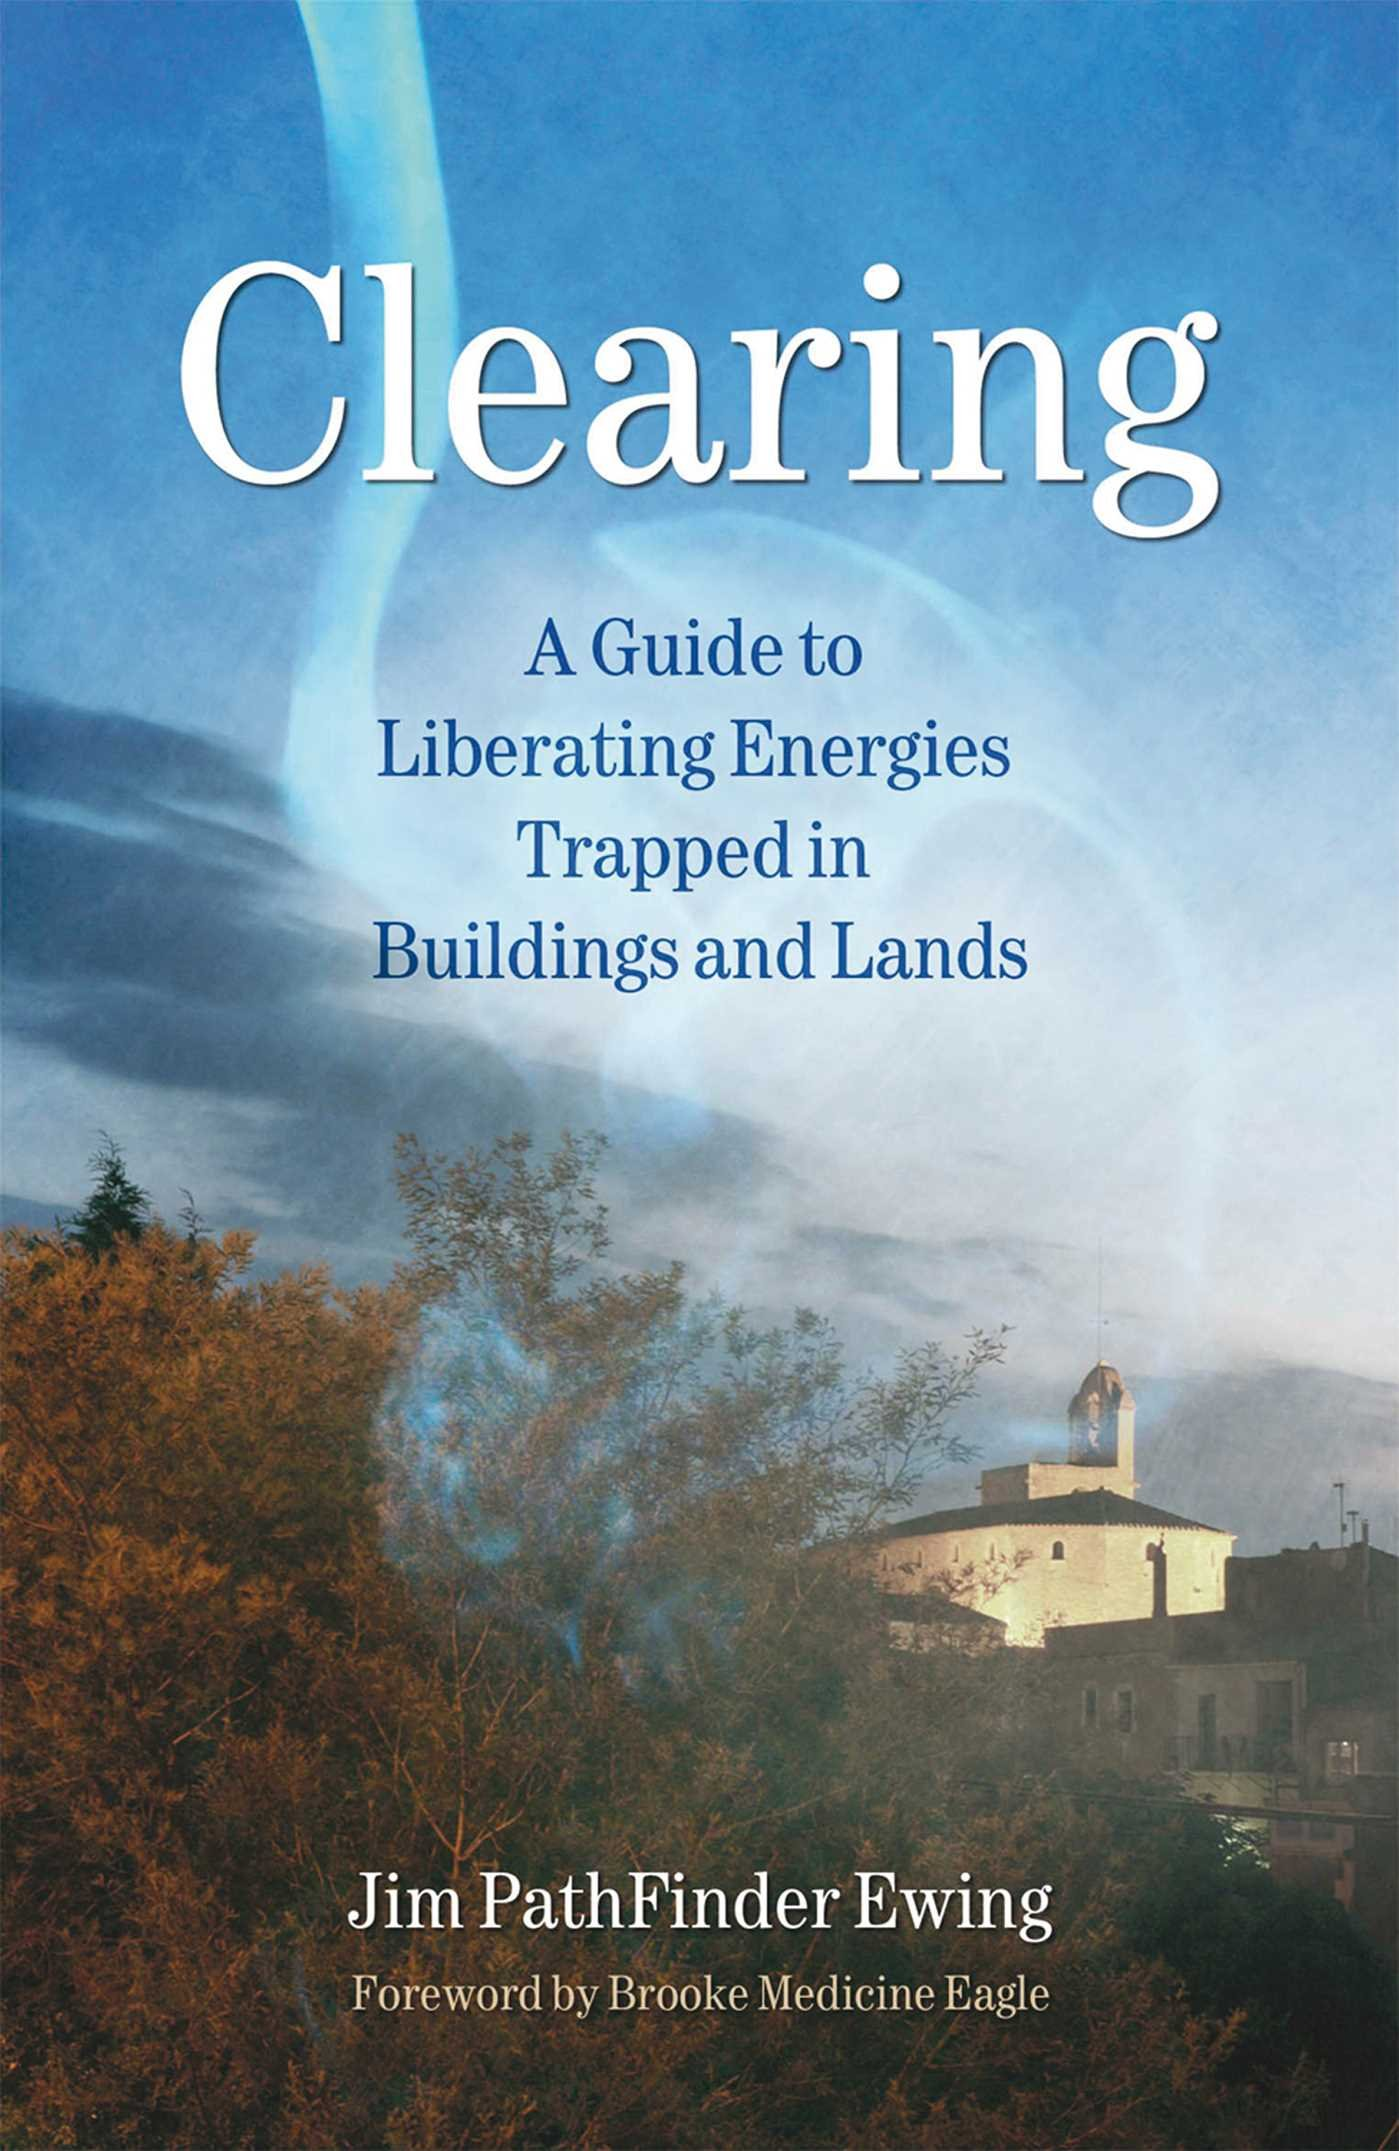 Read Online Clearing: A Guide to Liberating Energies Trapped in Buildings and Lands PDF